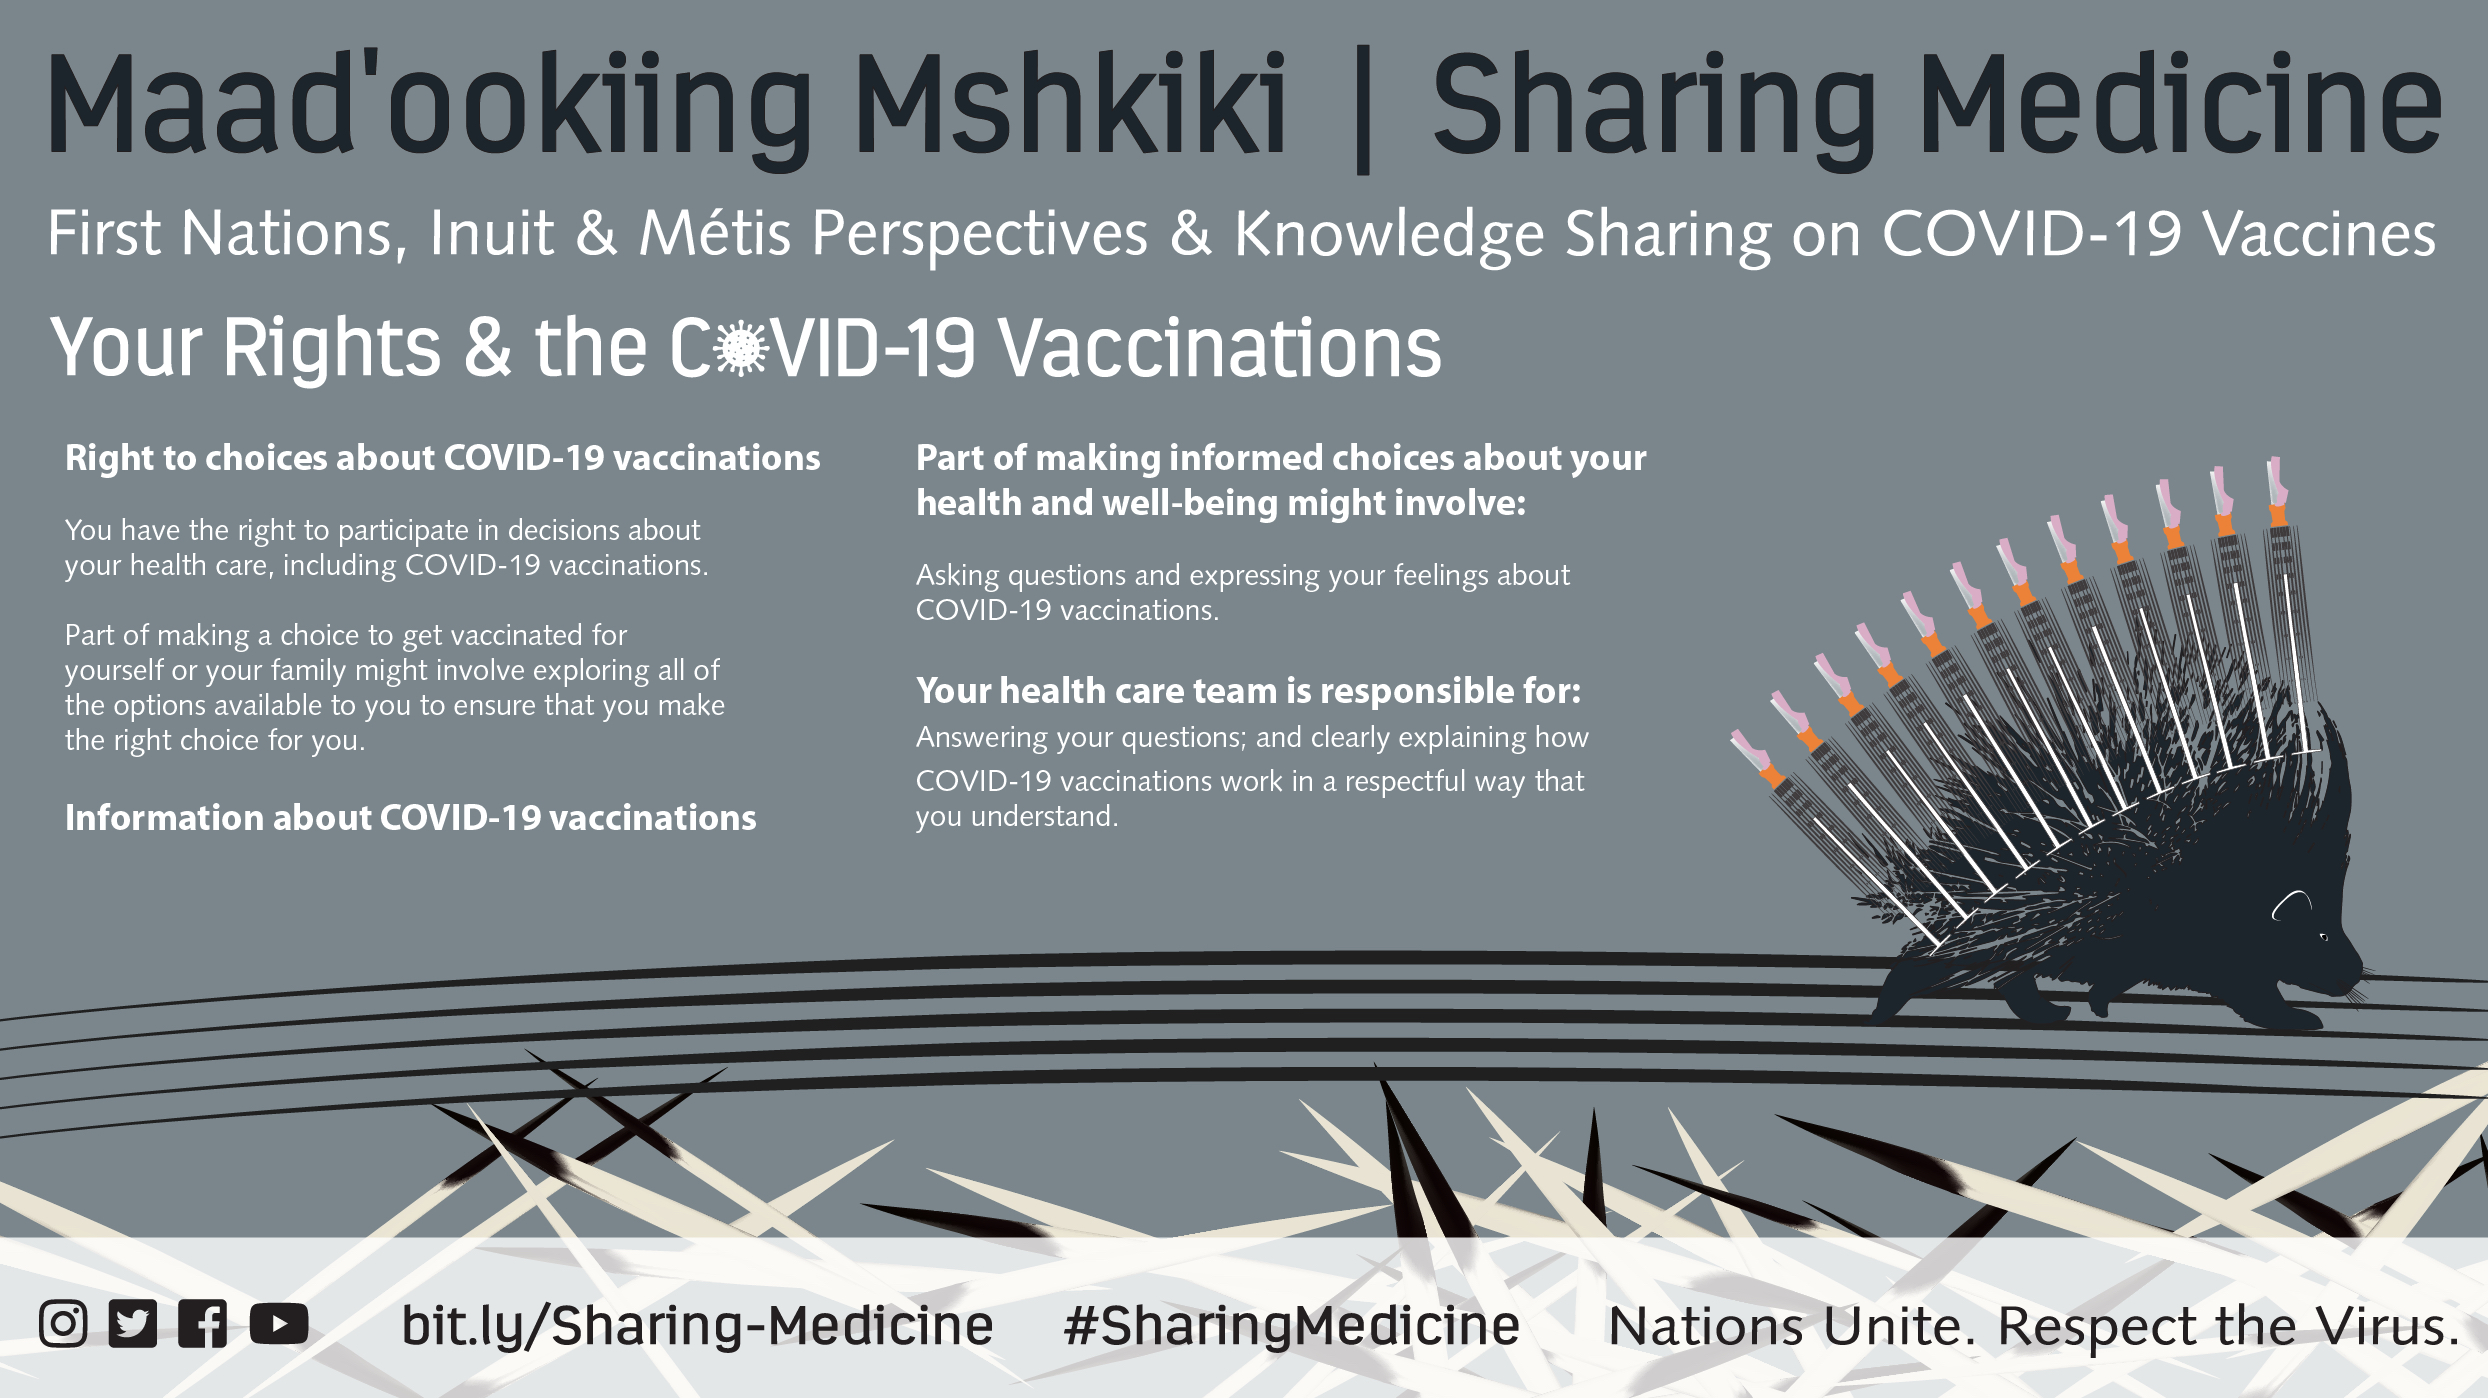 Your rights & the COVID-19 Vaccinations - your physical, emotional, spirtual & mental well-being matter